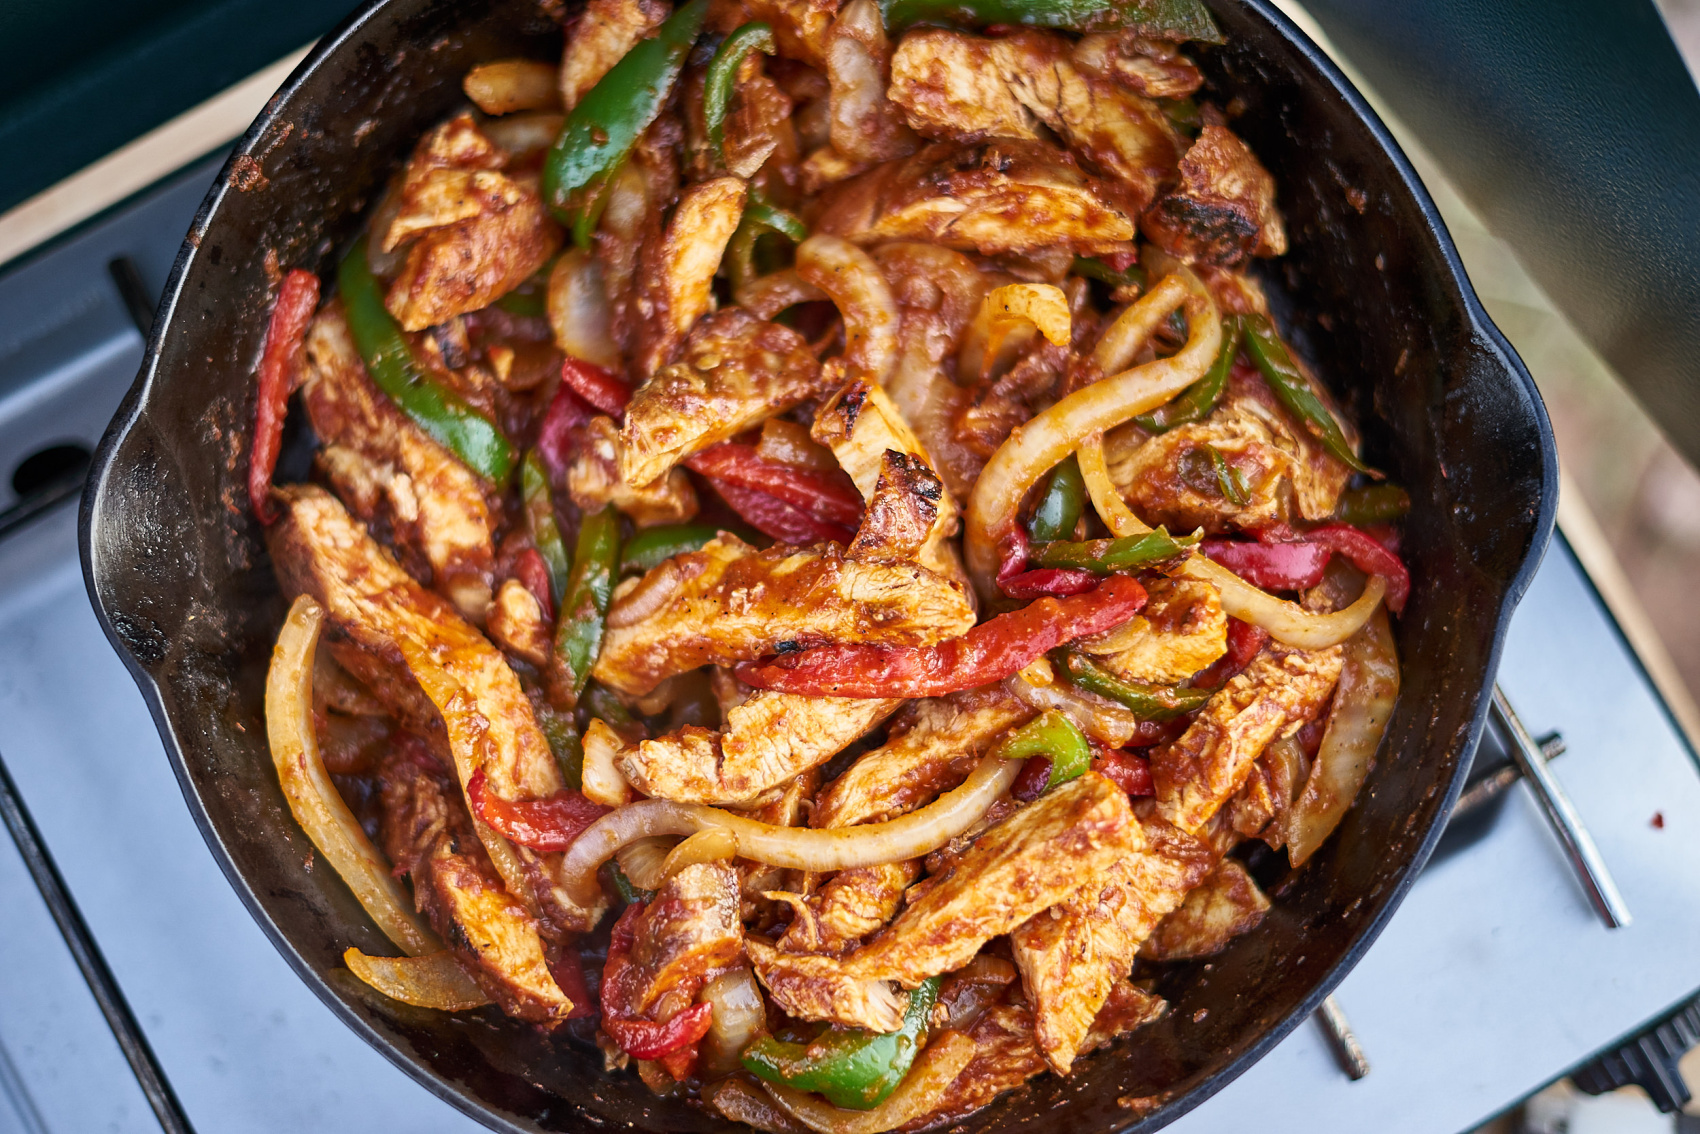 The ultimate car camping chicken fajitas. Click through to see how to make them while camping! (www.amandaoutside.com)